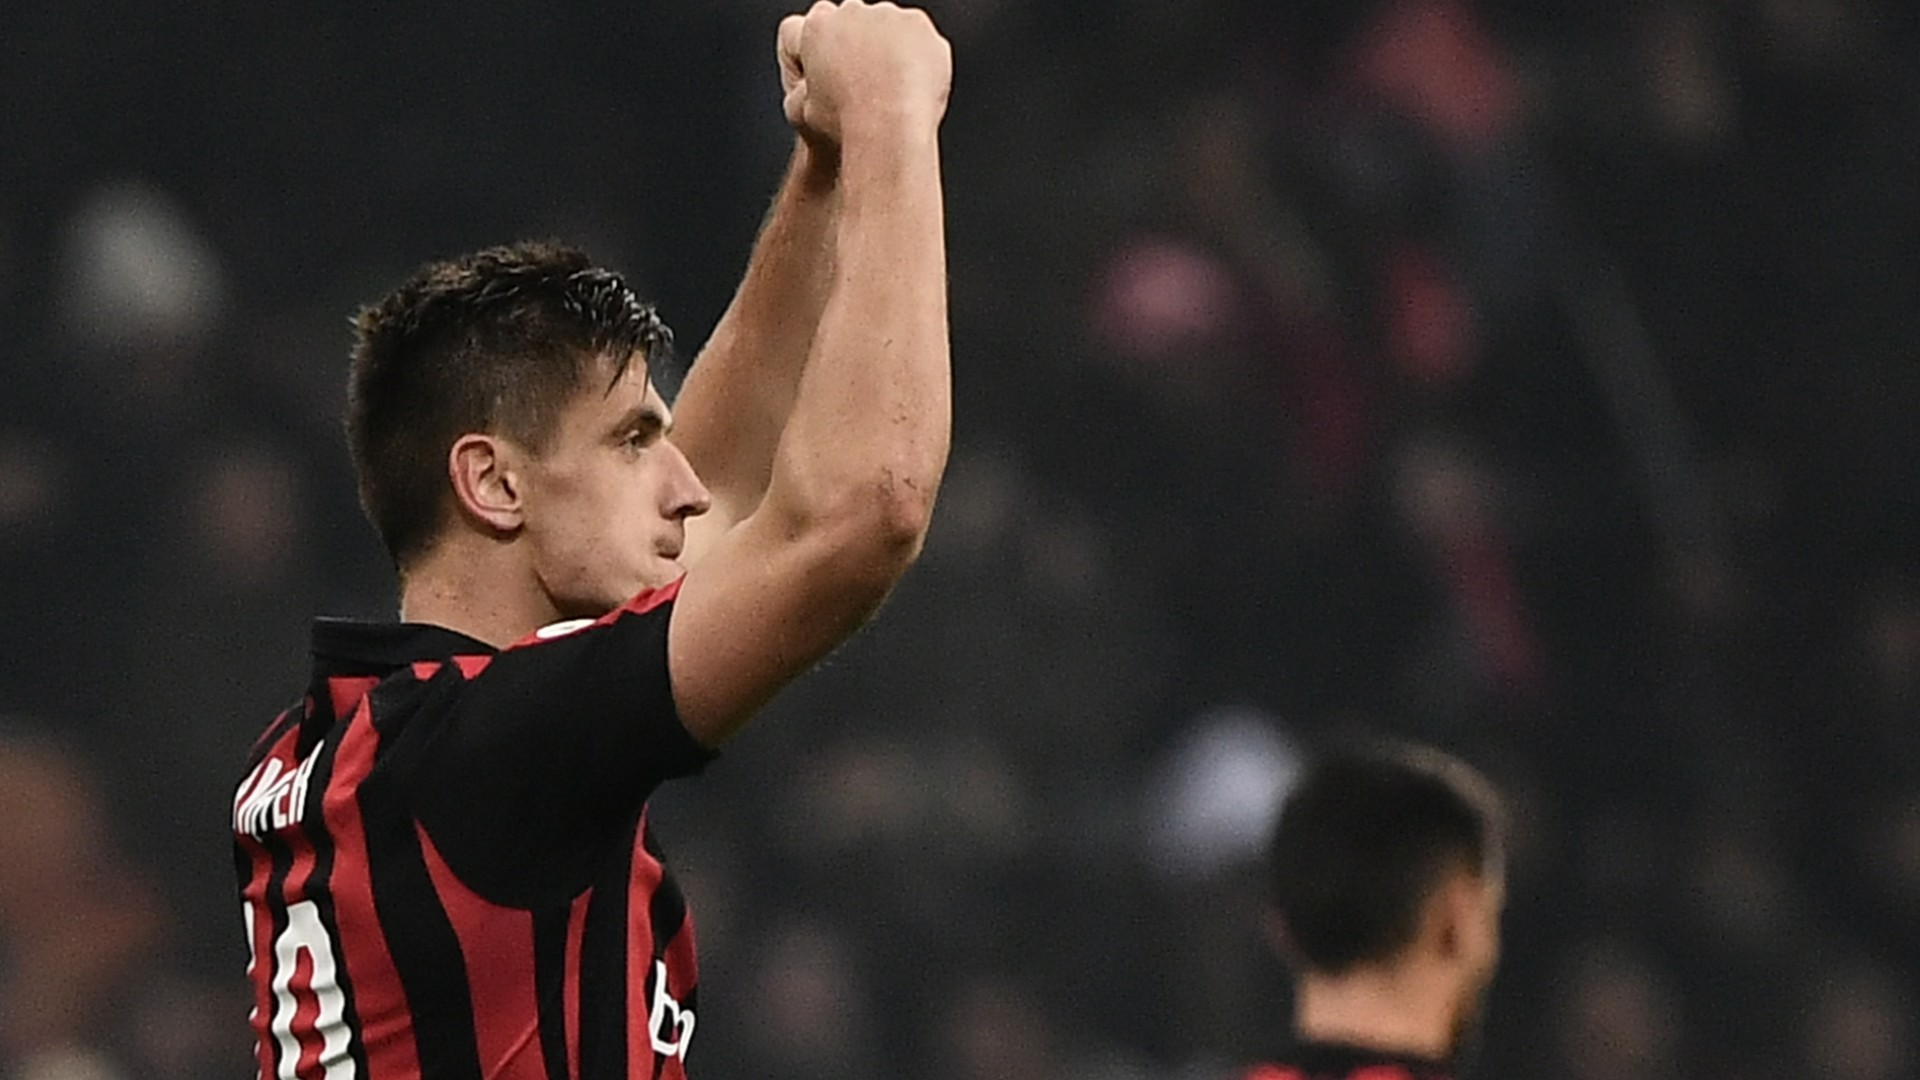 Piatek celebration milan cagliari